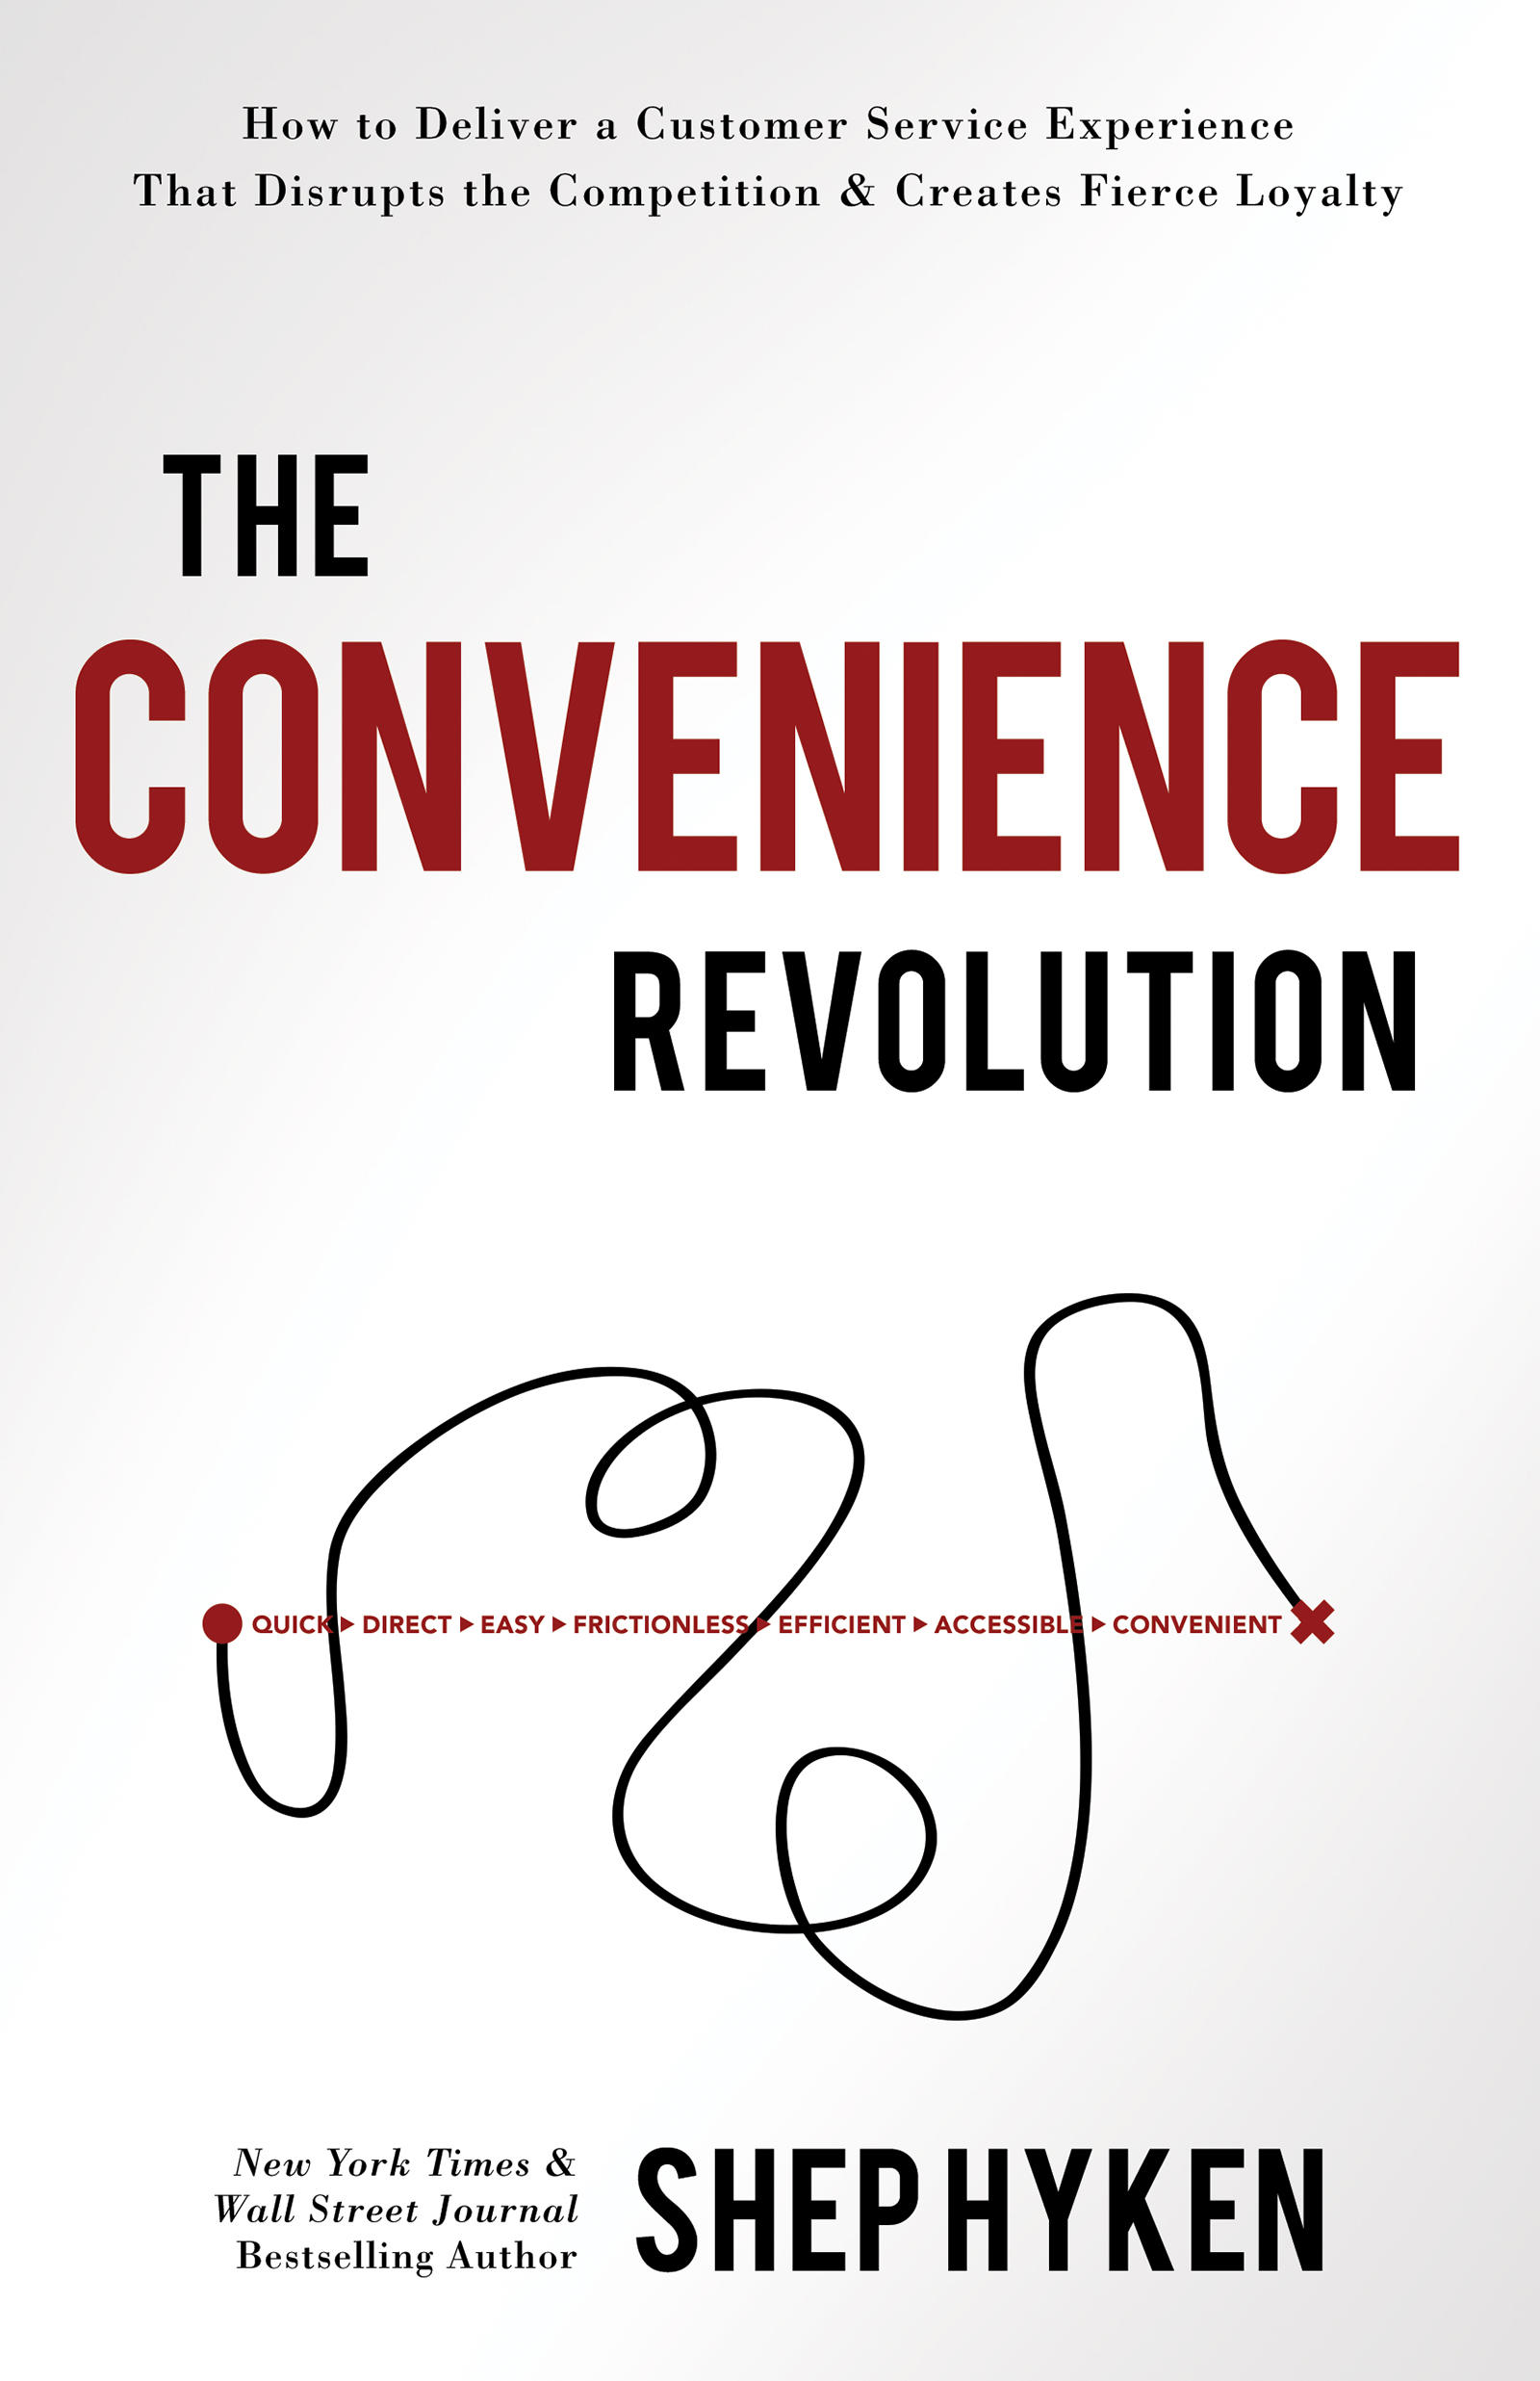 The Convenience Revolution - By Shep Hyken